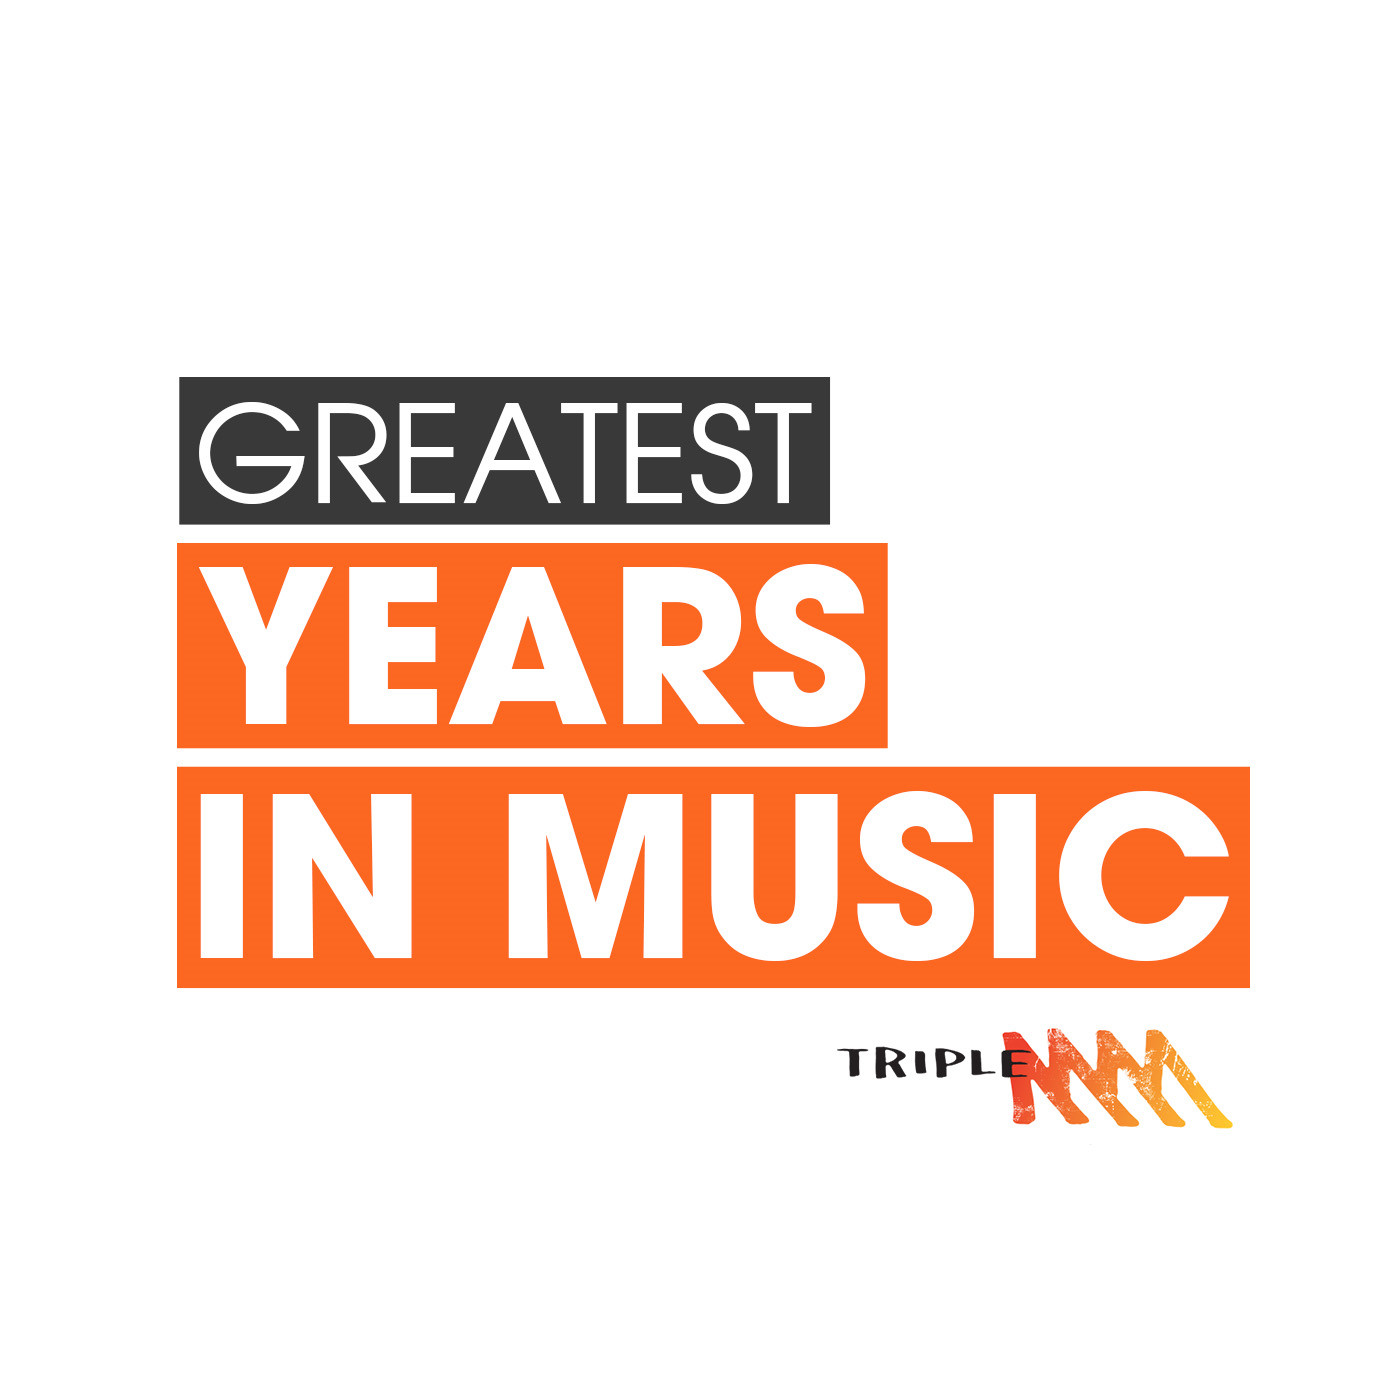 Greatest Years in Music